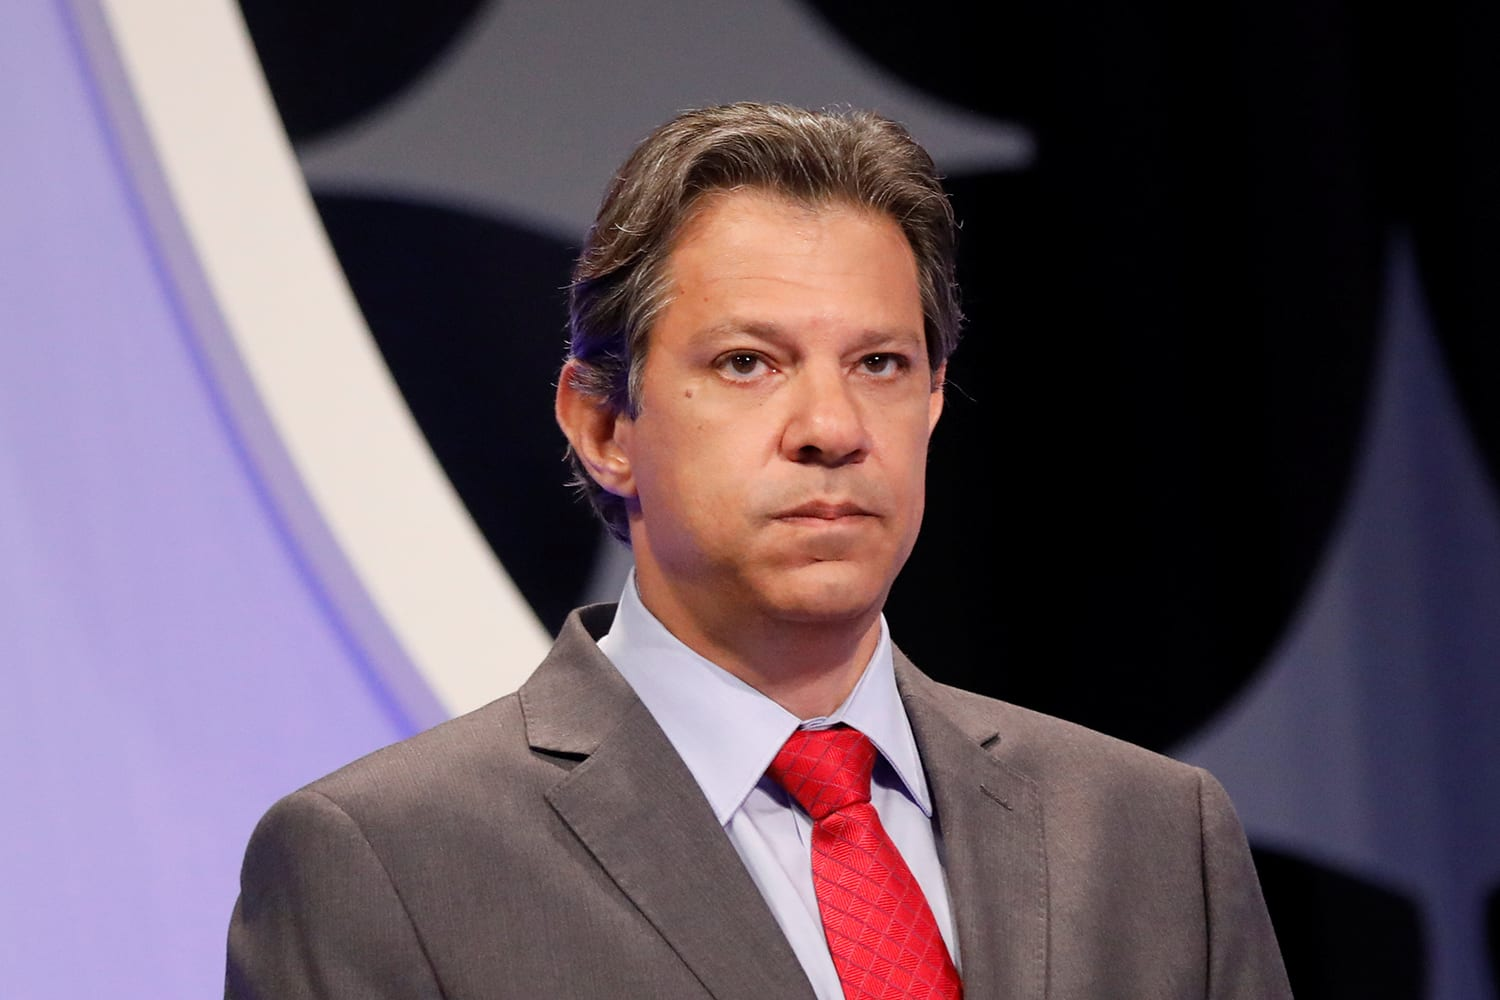 Presidential candidate Fernando Haddad of the Workers Party (PT) attends a televised debate in Sao Paulo